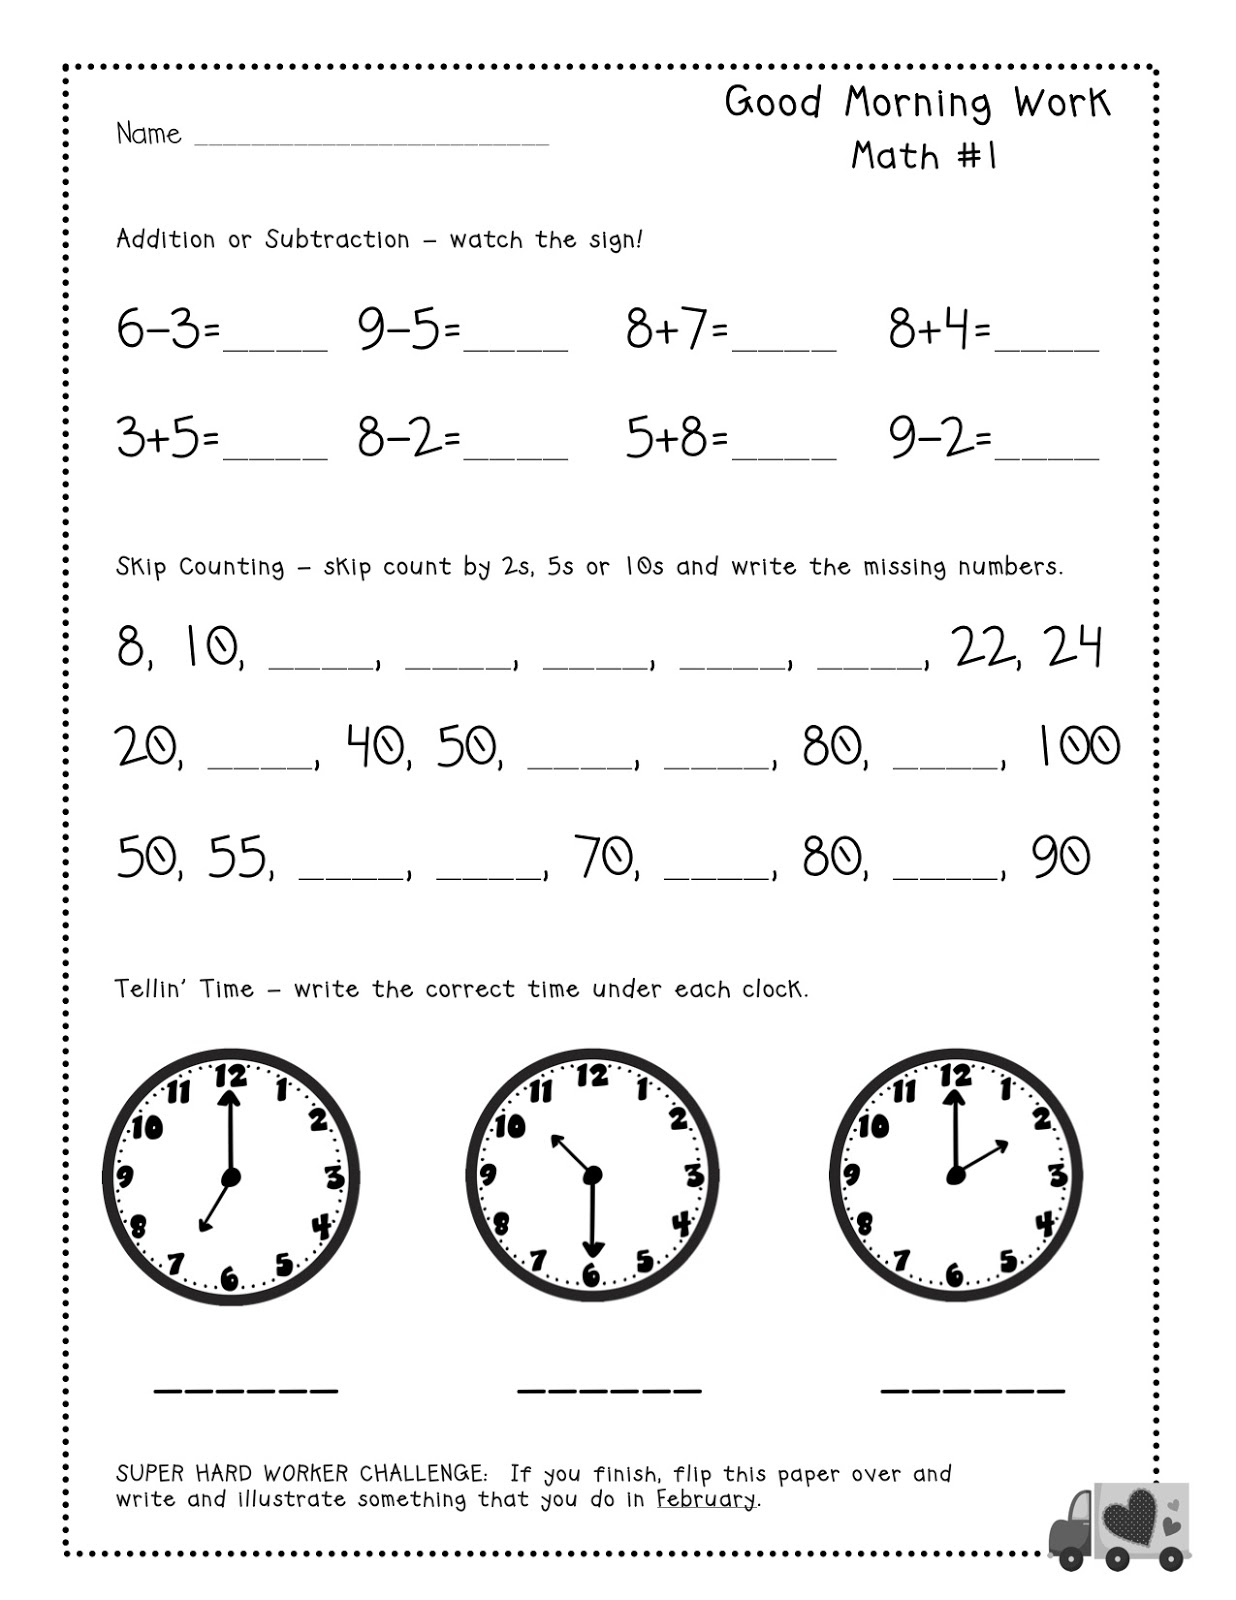 Free Morning Math Worksheets